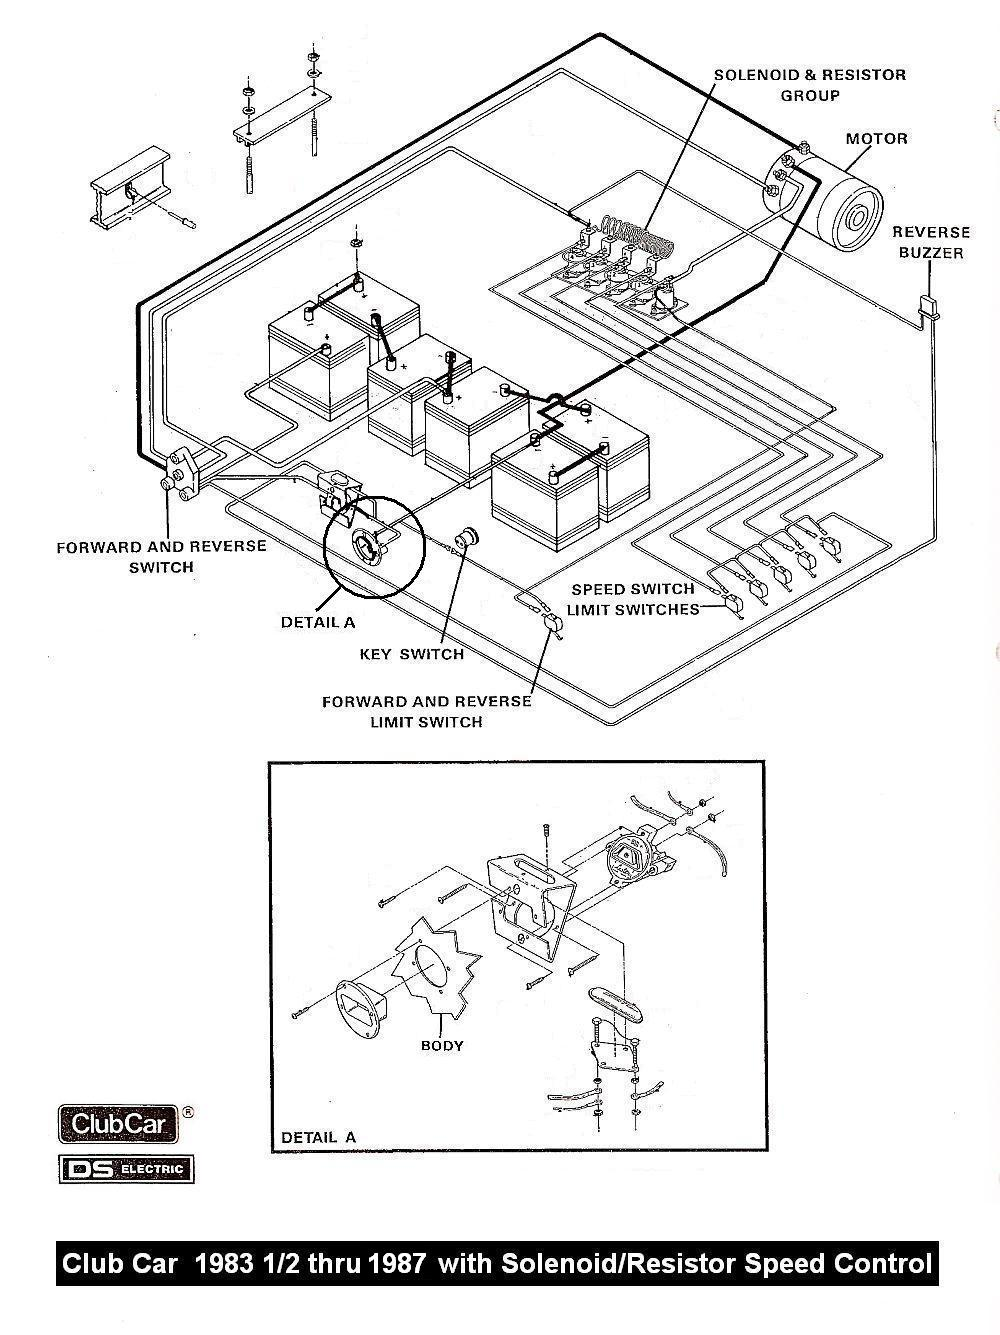 medium resolution of club car solenoid wiring diagram for 2006 wiring diagram todays rh 1 1 14 1813weddingbarn com 1999 ez go txt wiring diagram golf cart solenoid wiring